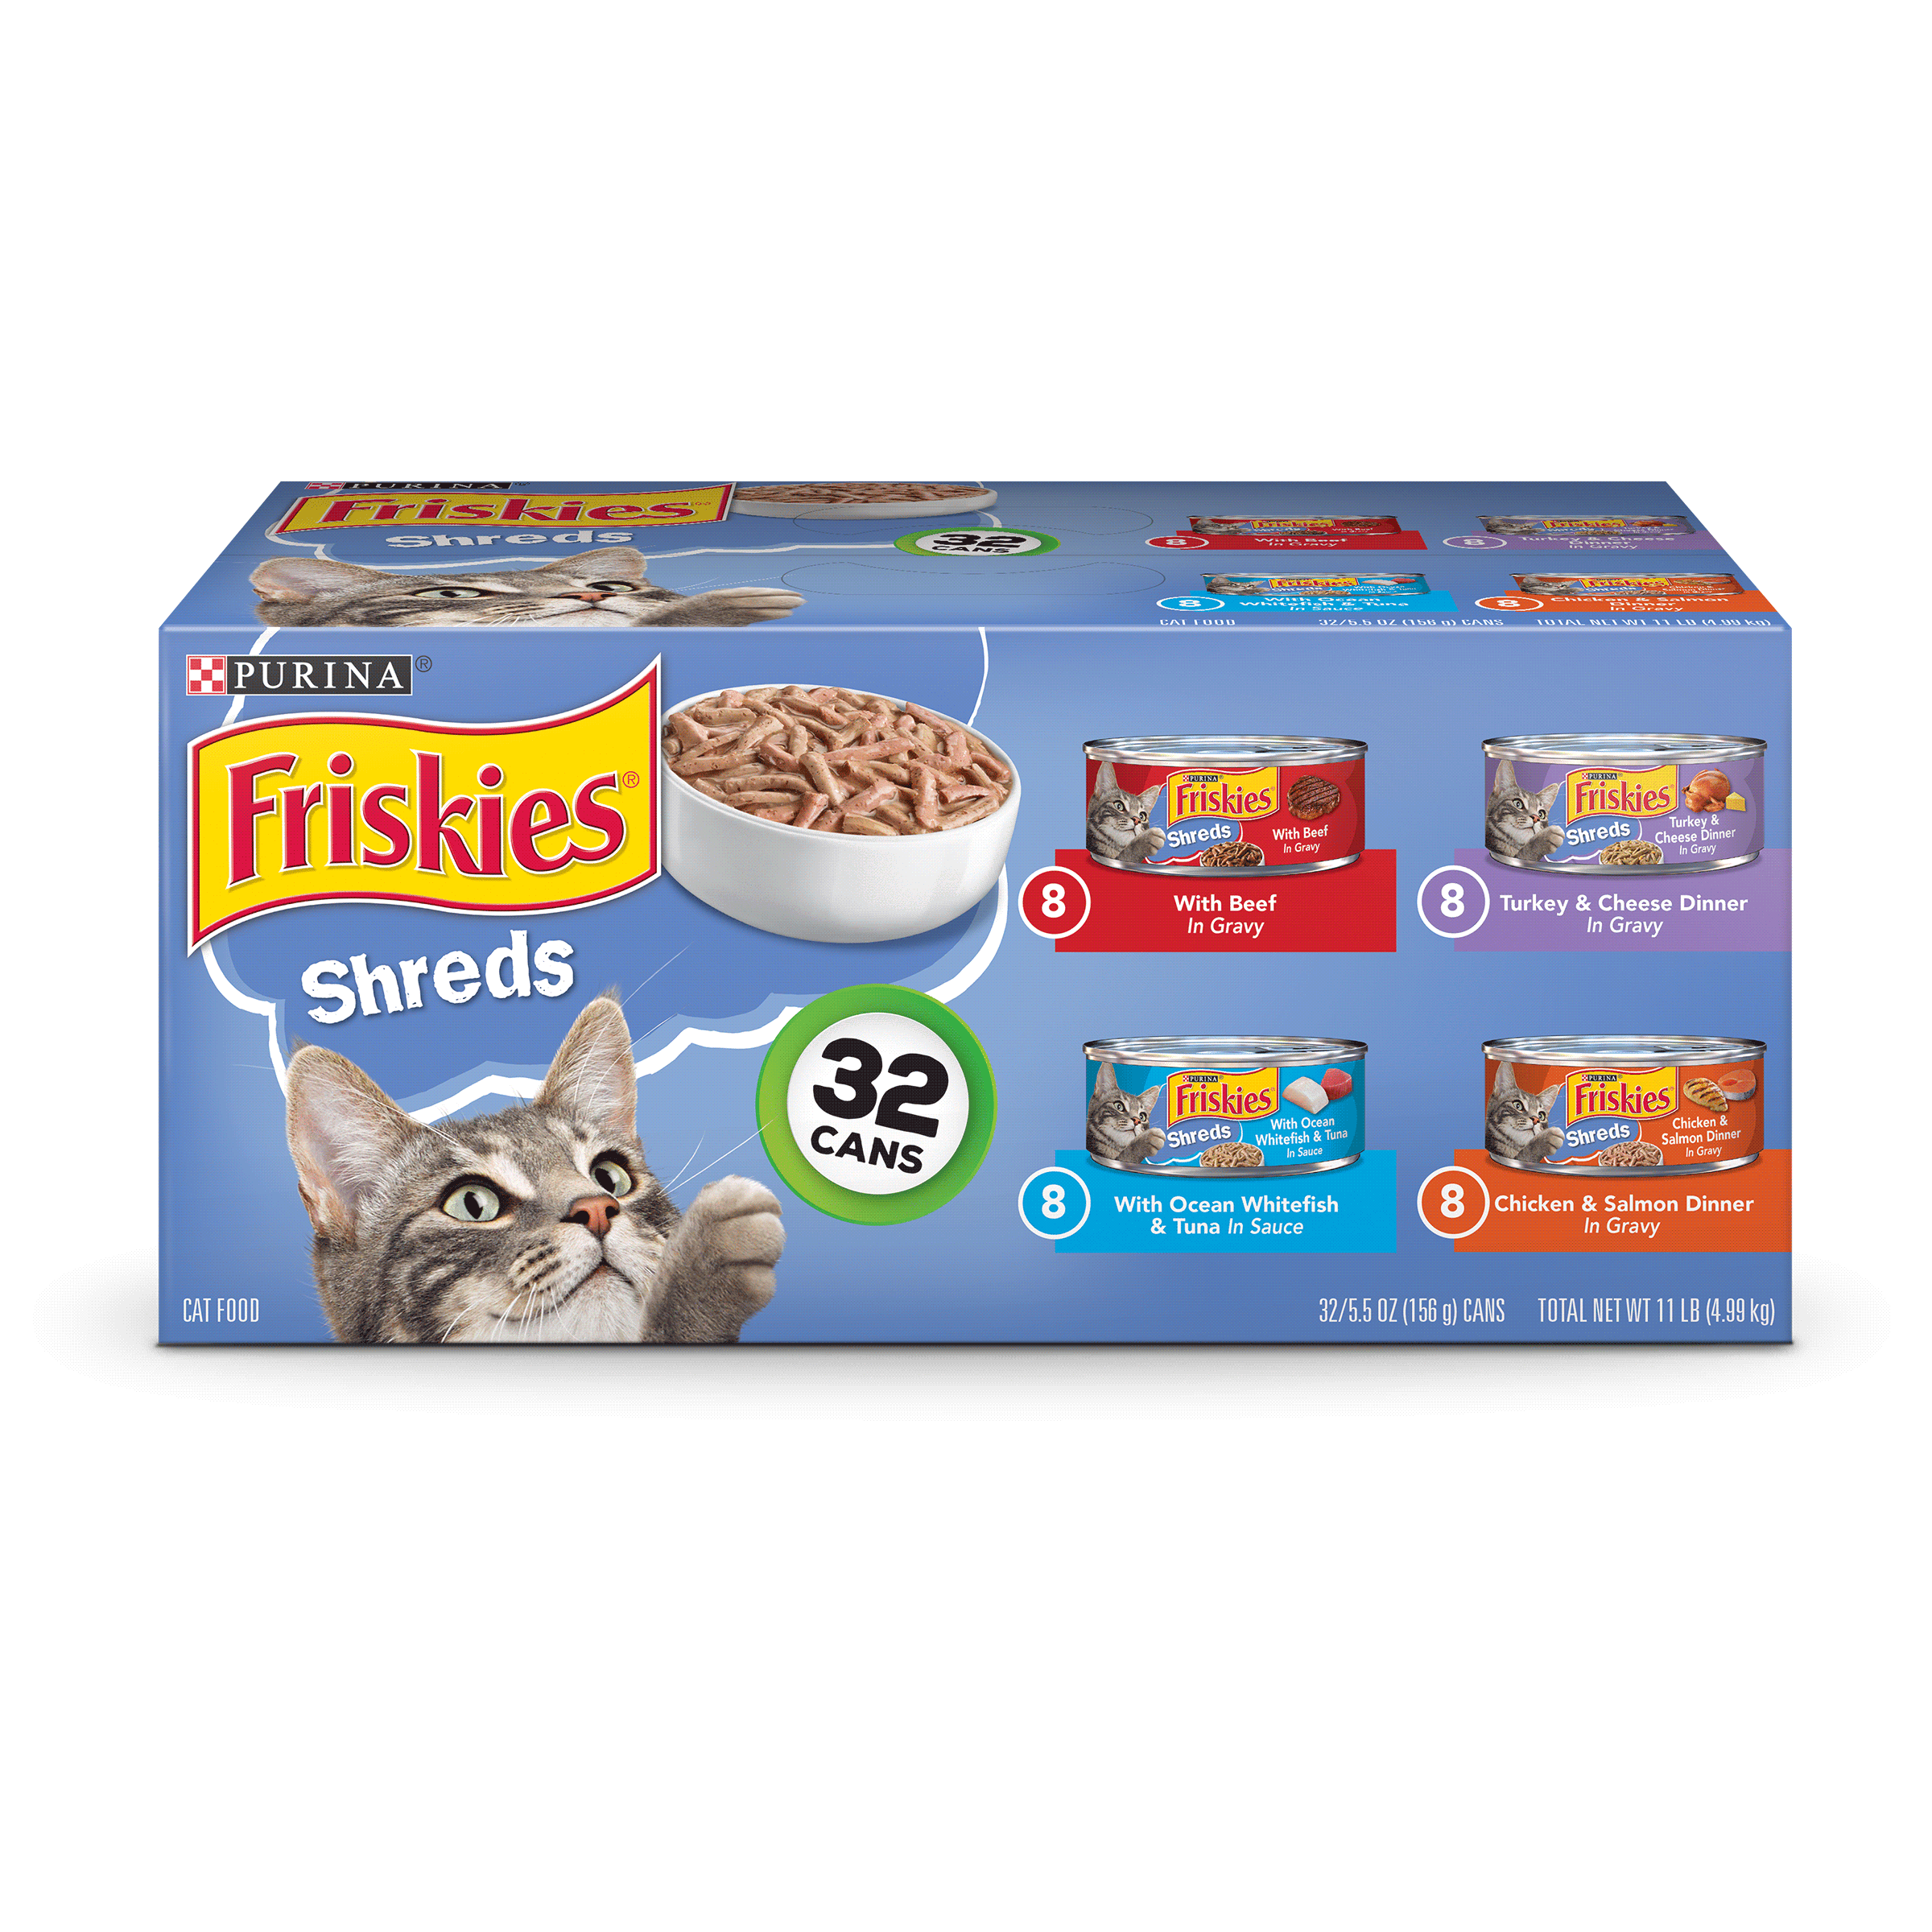 Friskies Savory Shreds Adult Wet Cat Food Variety Pack (32) 5.5 oz. Cans by Nestle Purina Petcare Company